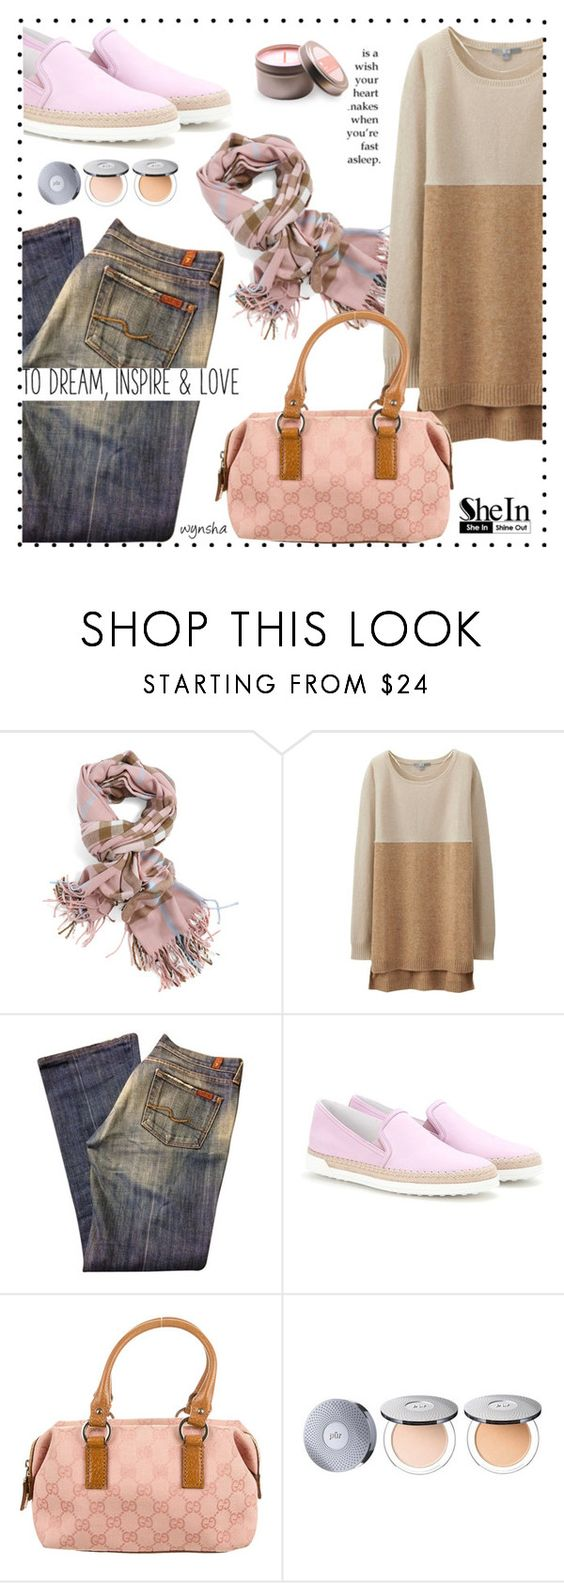 """""""SCARF Me To Your Heart #2"""" by wynsha ❤ liked on Polyvore featuring Uniqlo, 7 For All Mankind, Tod's, Gucci and PurMinerals"""